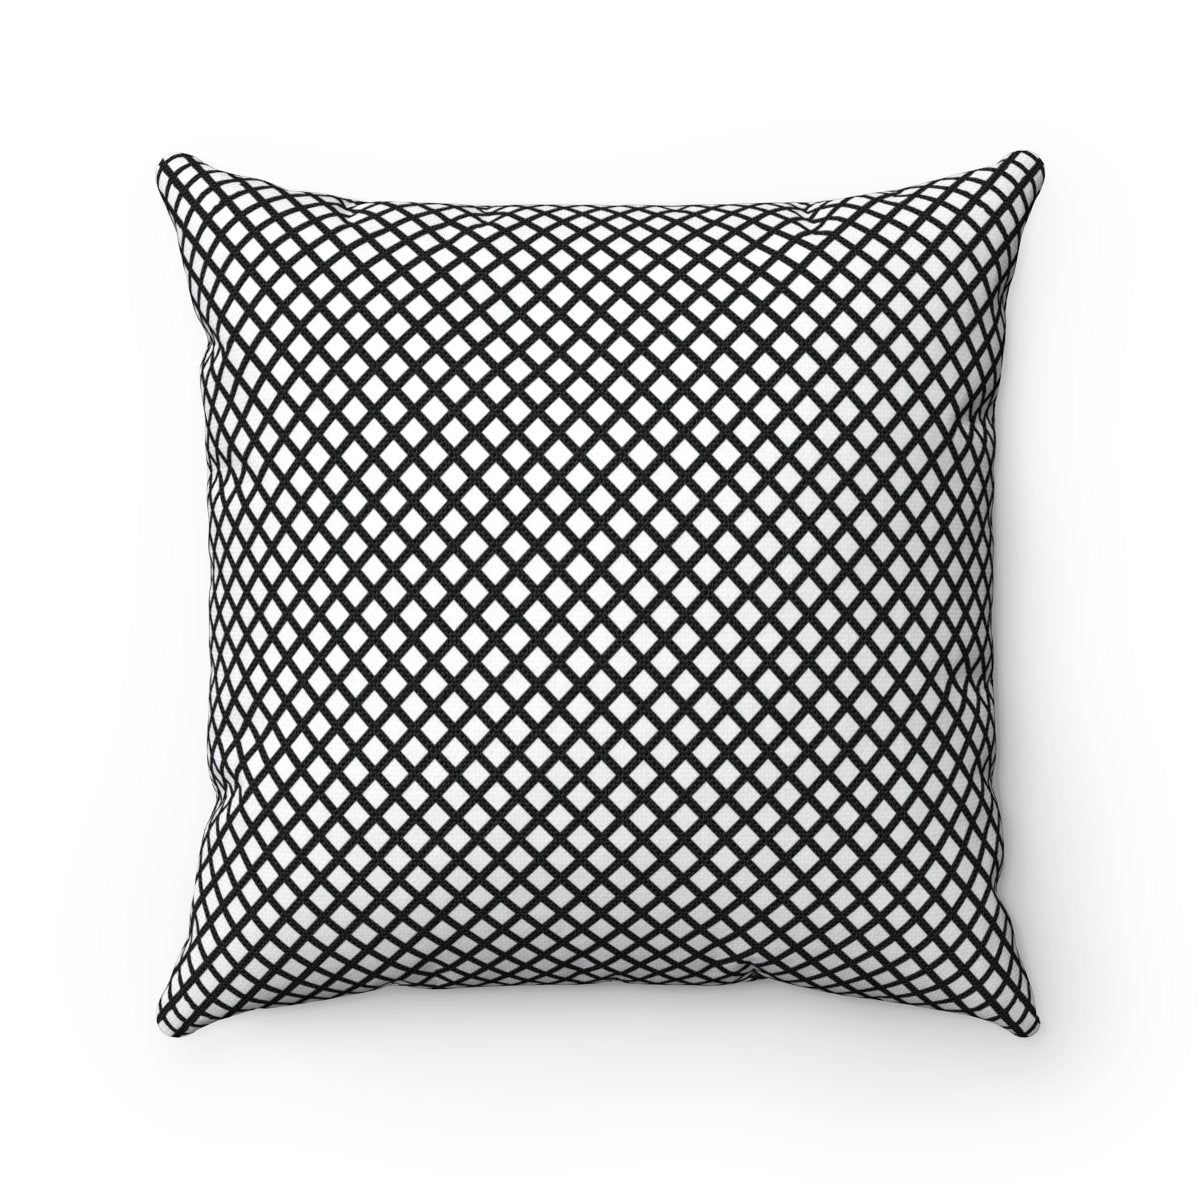 Black and White Fisheye decorative cushion cover-Home Decor - Decorative Accents - Pillows & Throws - Decorative Pillows-Maison d'Elite-14x14-Très Elite